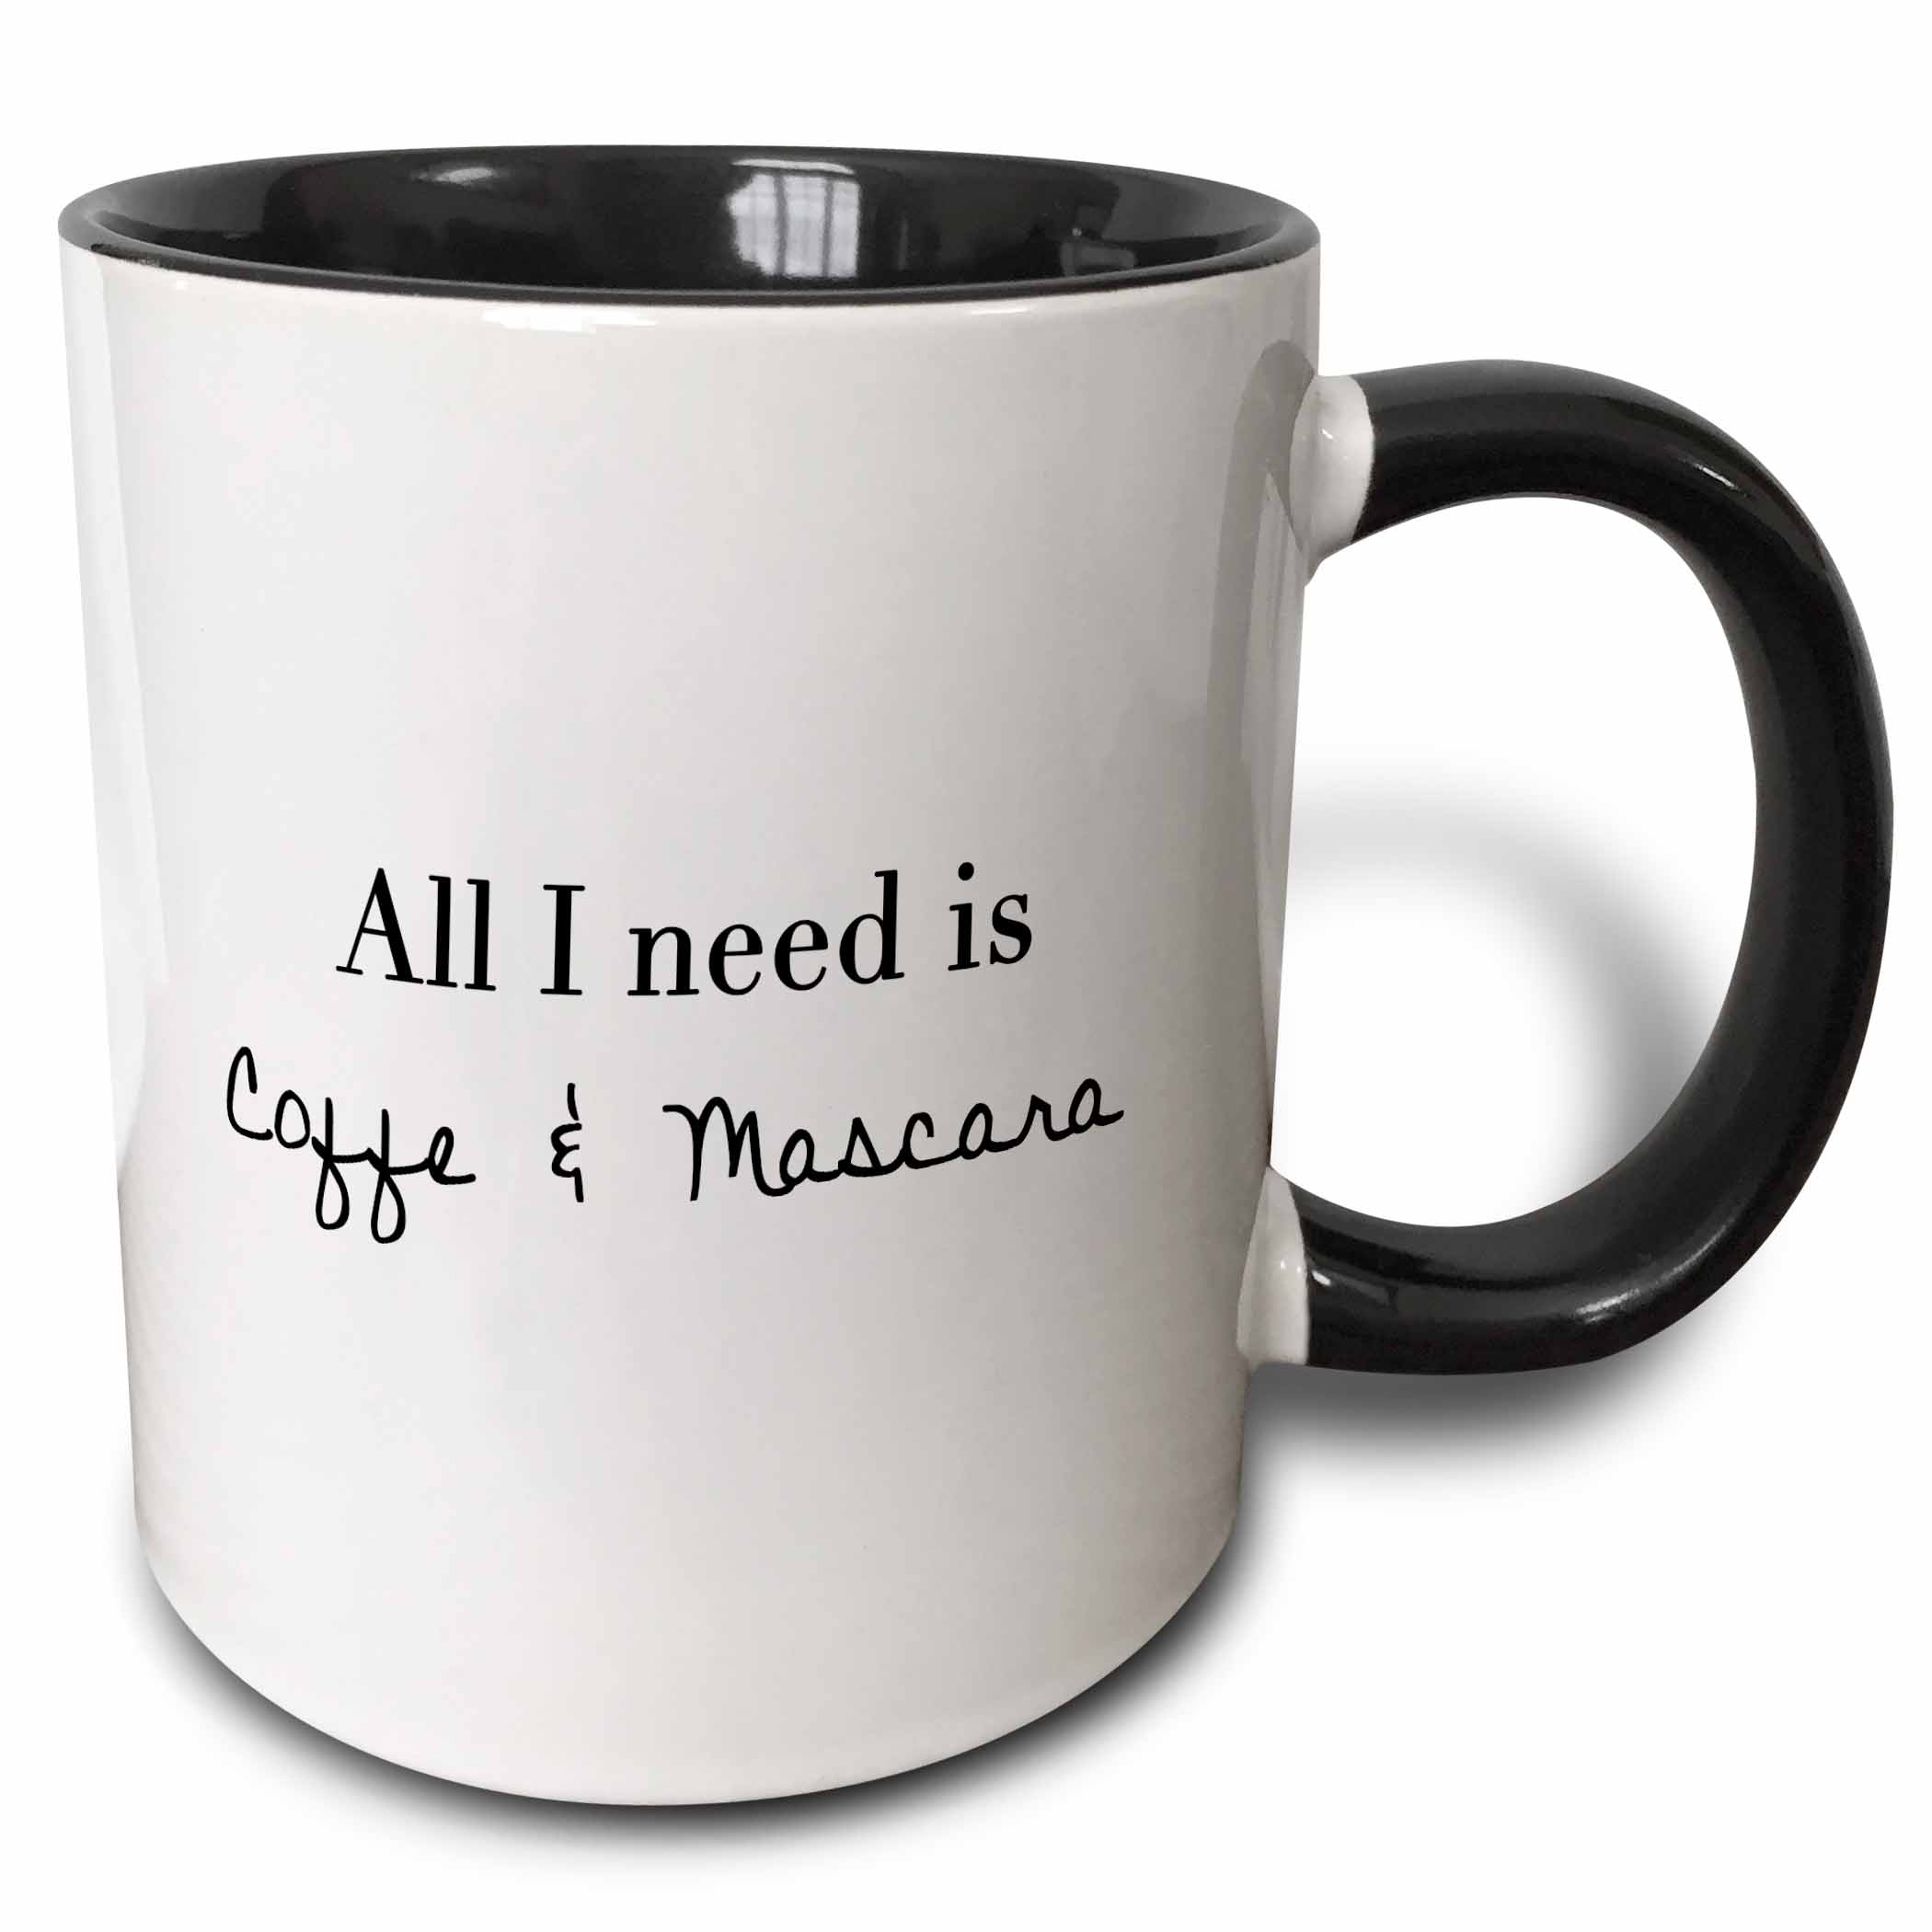 3dRose ALL I NEED IS COFFEE AND MASCARA, Two Tone Black Mug, 11oz by 3dRose